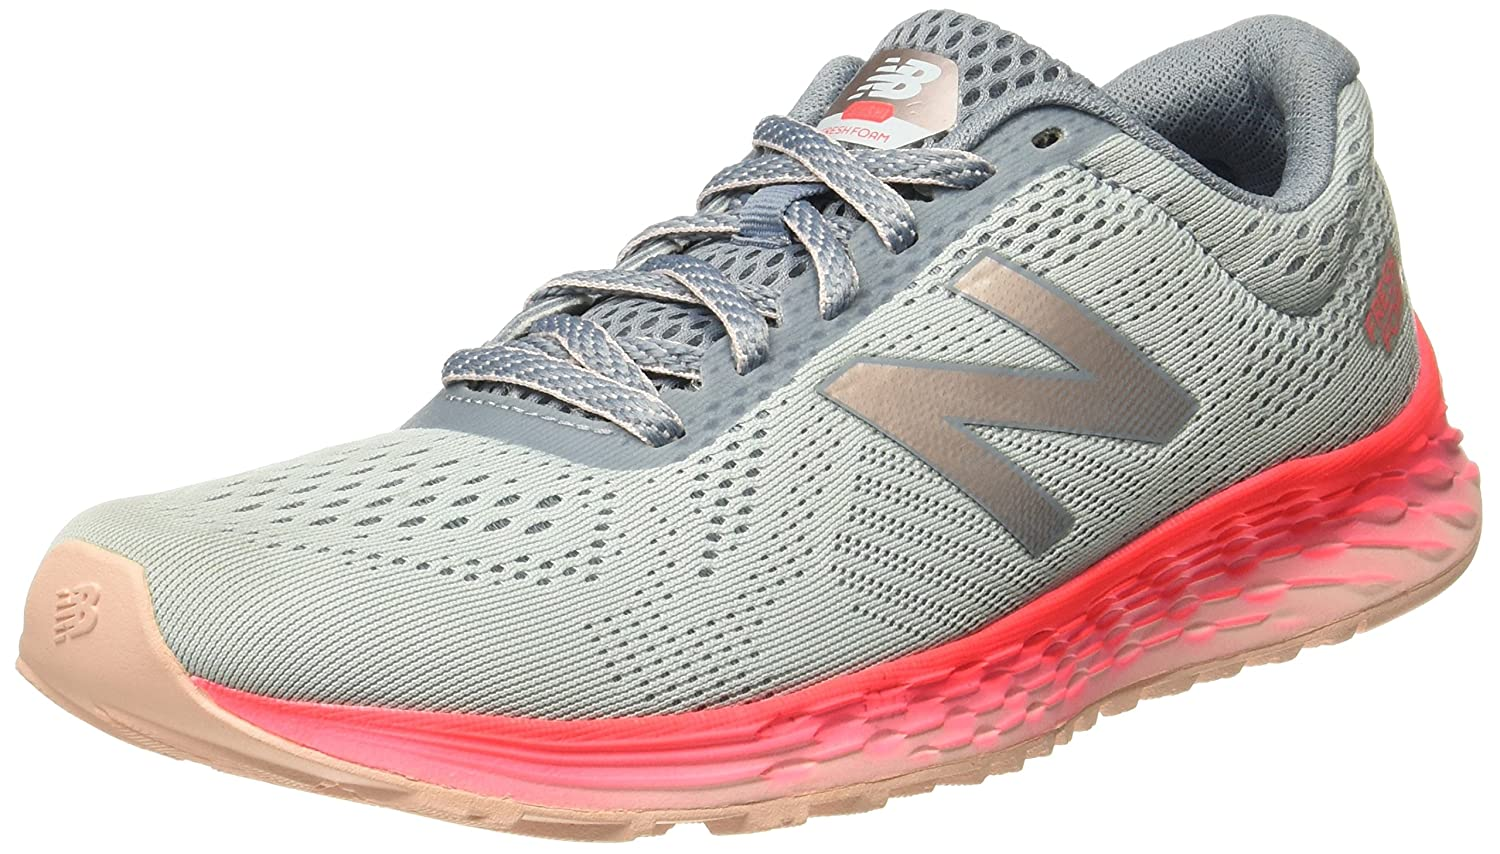 New Balance Women's Fresh Foam Arishi V1 Running Shoe B06XRVBCNR 105 D US|Light Porcelain Blue/Vivid Coral